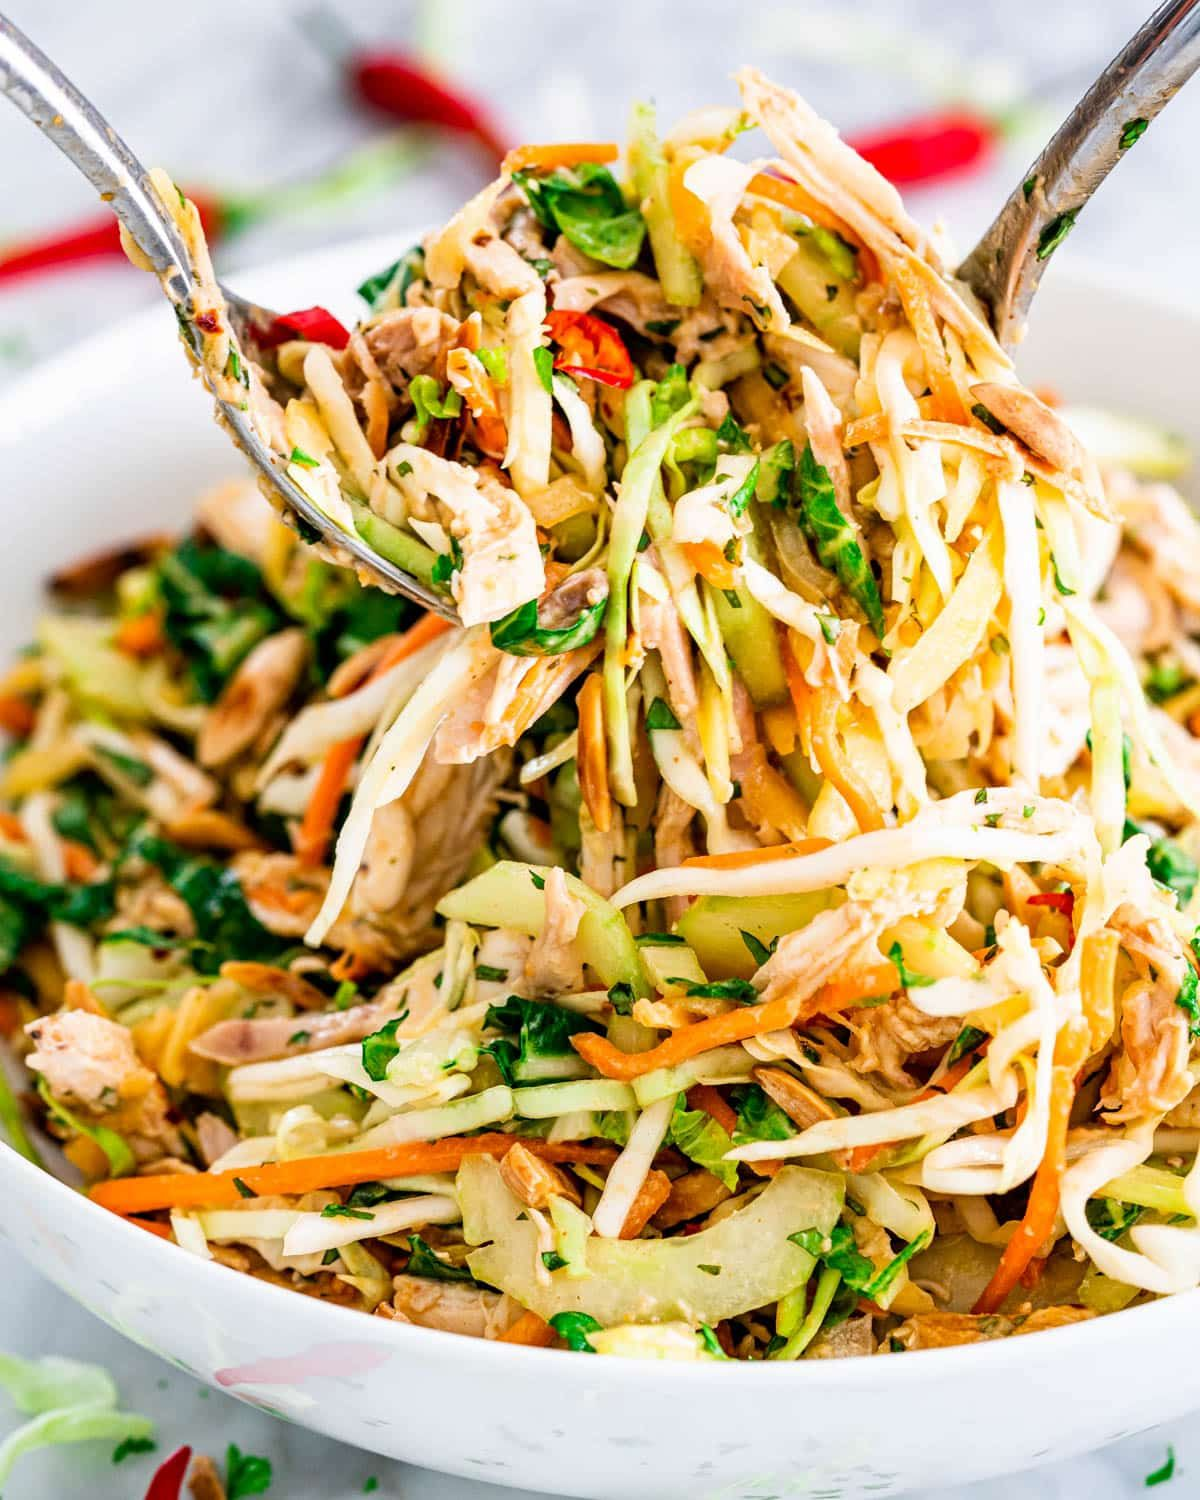 This is the best Thai Chicken Salad recipe! Featuring papaya, cabbage, carrots, cucumber and a spicy peanut dressing, you can enjoy this amazing salad all on its own as a filling and healthy meal. #thai #chickensalad